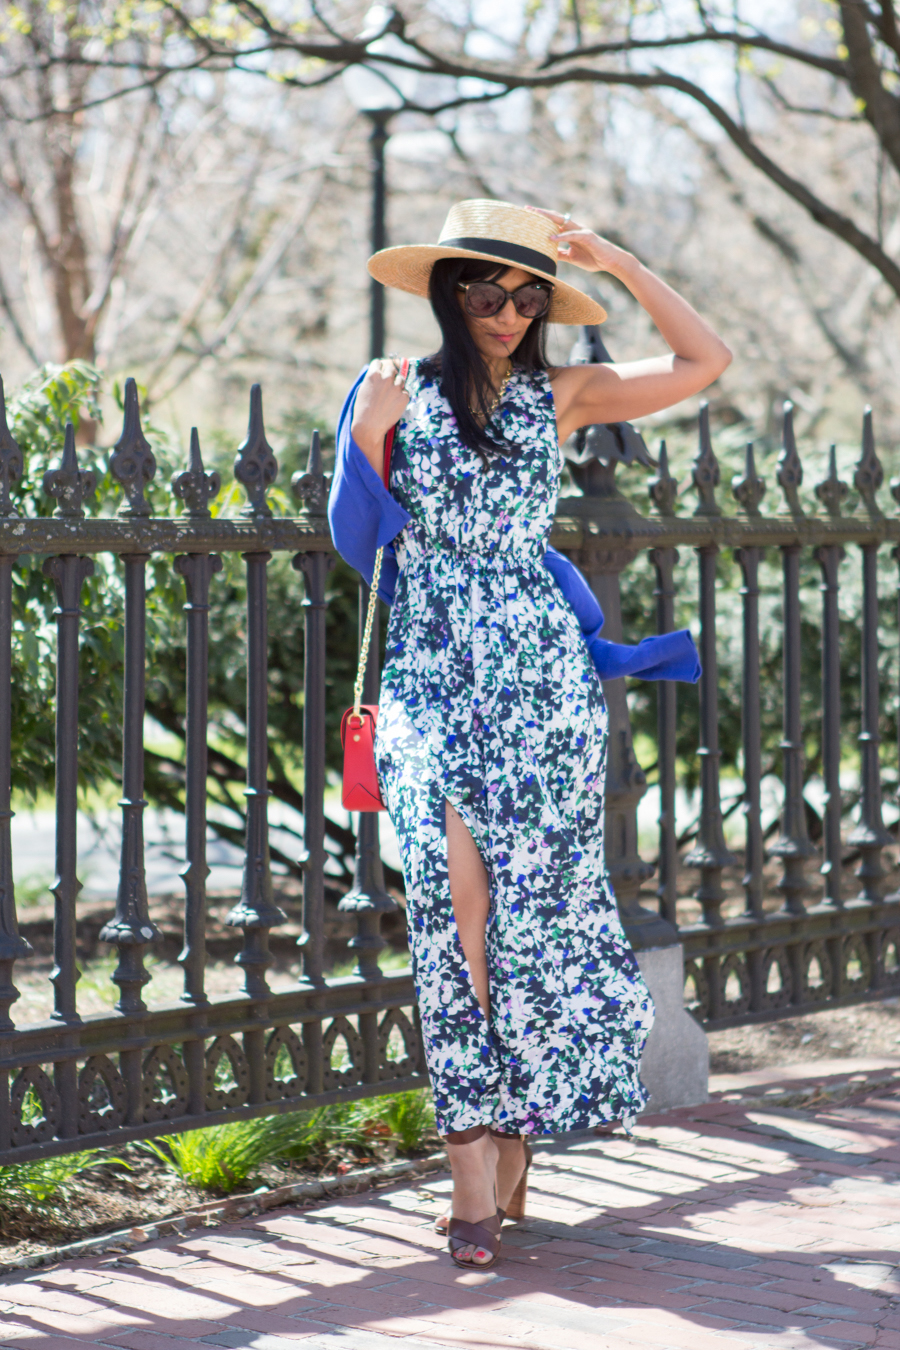 spring style, maxi dress, floral dress, floral maxi, cobalt blue, ann taylor, banana republic, jcrew, AEO, block heels, fashion blog, petite fashion, petite maxi, petite dresses, mommy style, mommy fashion, mom chic, mom glam, boater hat, straw hat, boston commons, spring lookbook, weekend style, garden party, indian blogger, feminine style, flowy dress